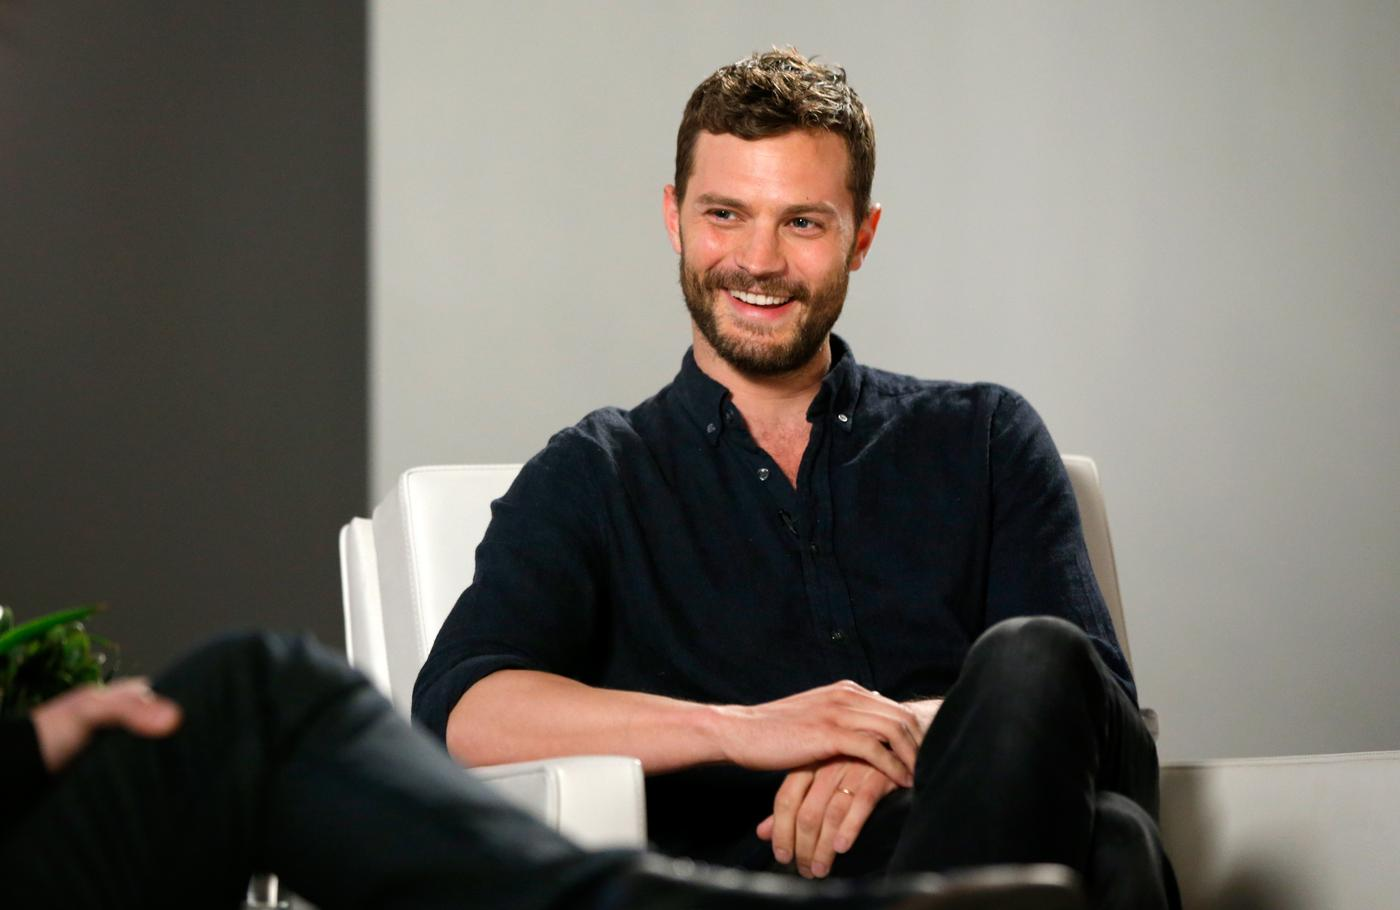 50 Shades Of Grey star Jamie Dornan once STALKED a woman